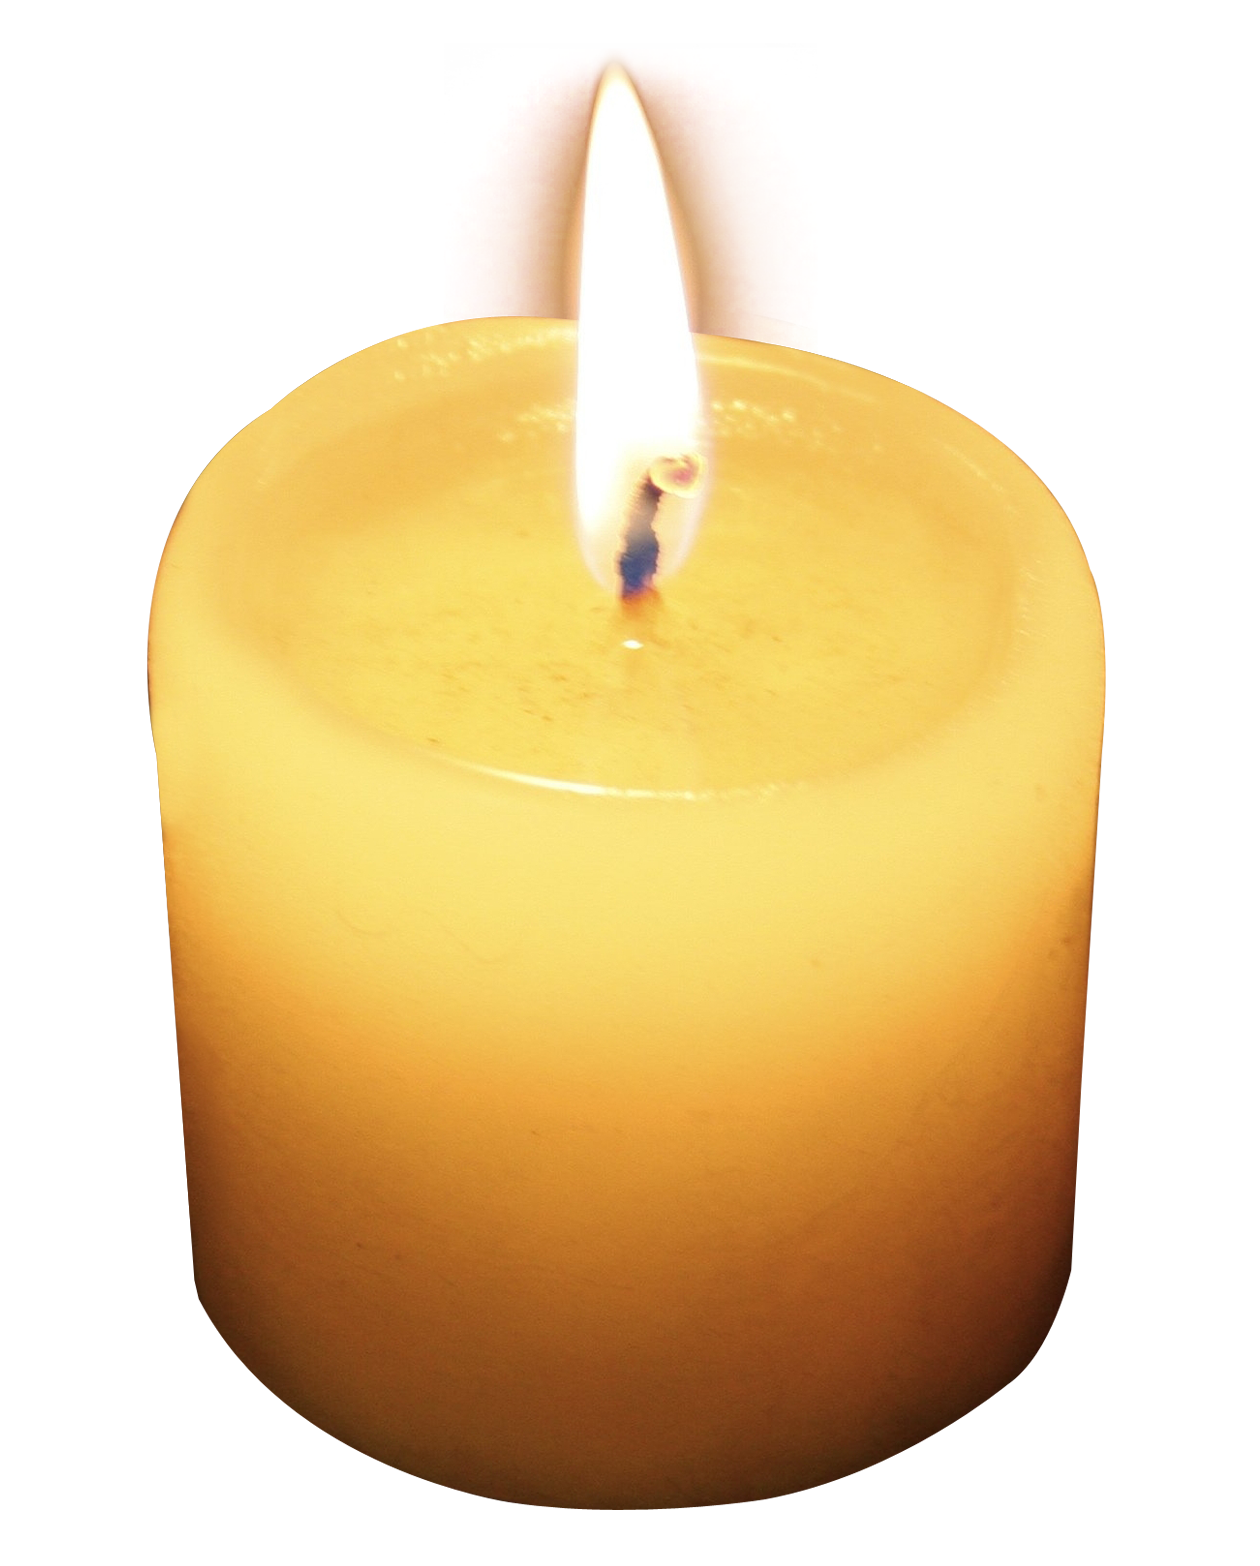 Hdpng - Candle, Transparent background PNG HD thumbnail